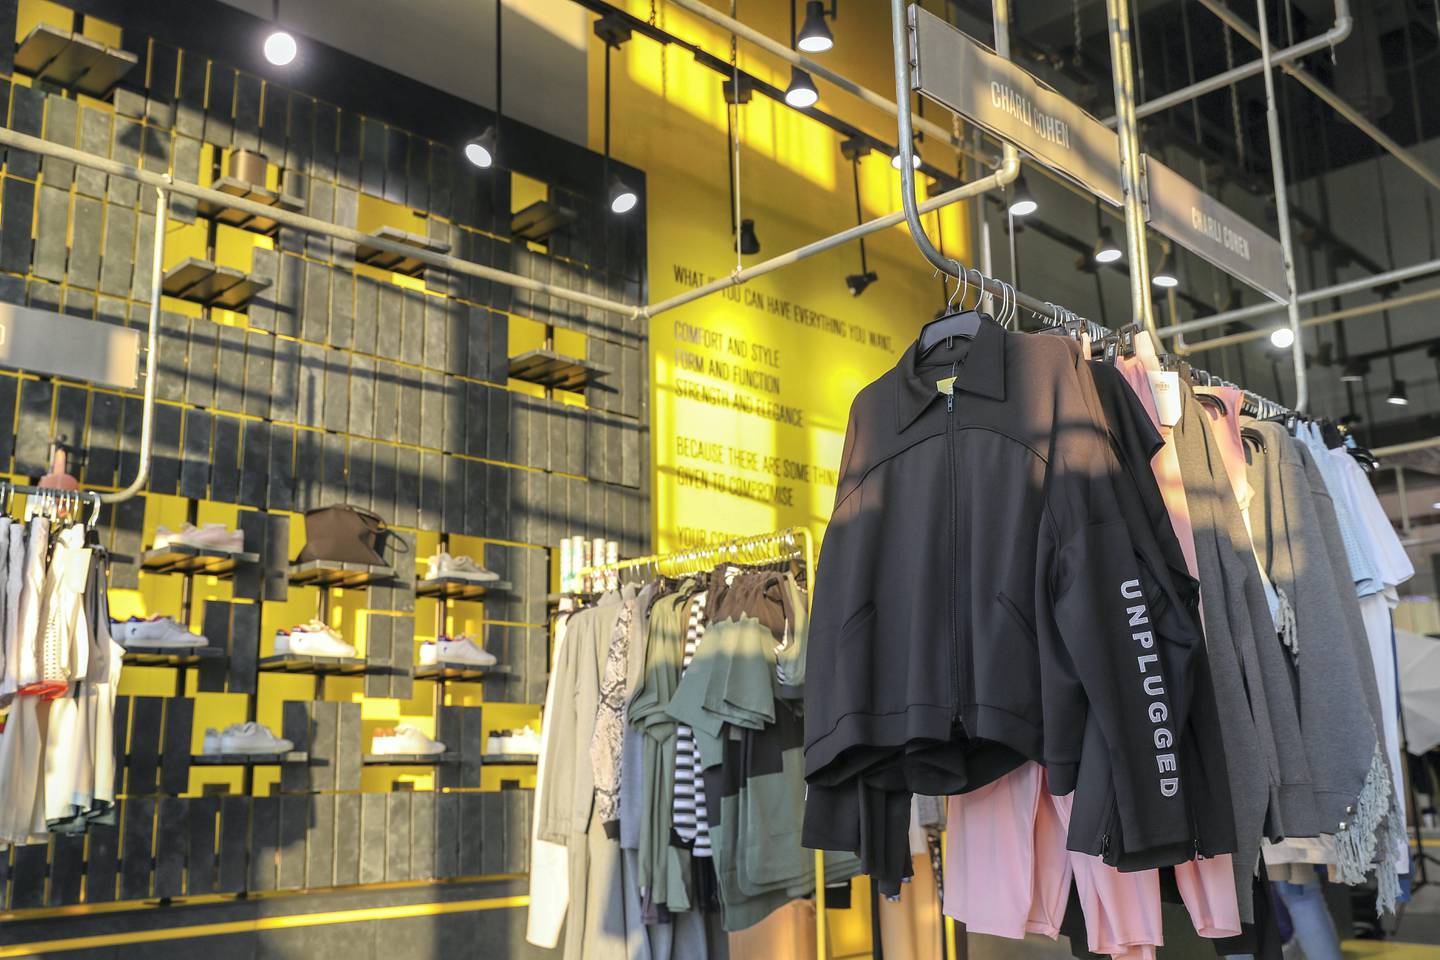 Dubai, United Arab Emirates - October 16th, 2017: General view pictures of the Hauteletic store. Monday, October 16th, 2017 at Galleria Mall, Dubai. Chris Whiteoak / The National